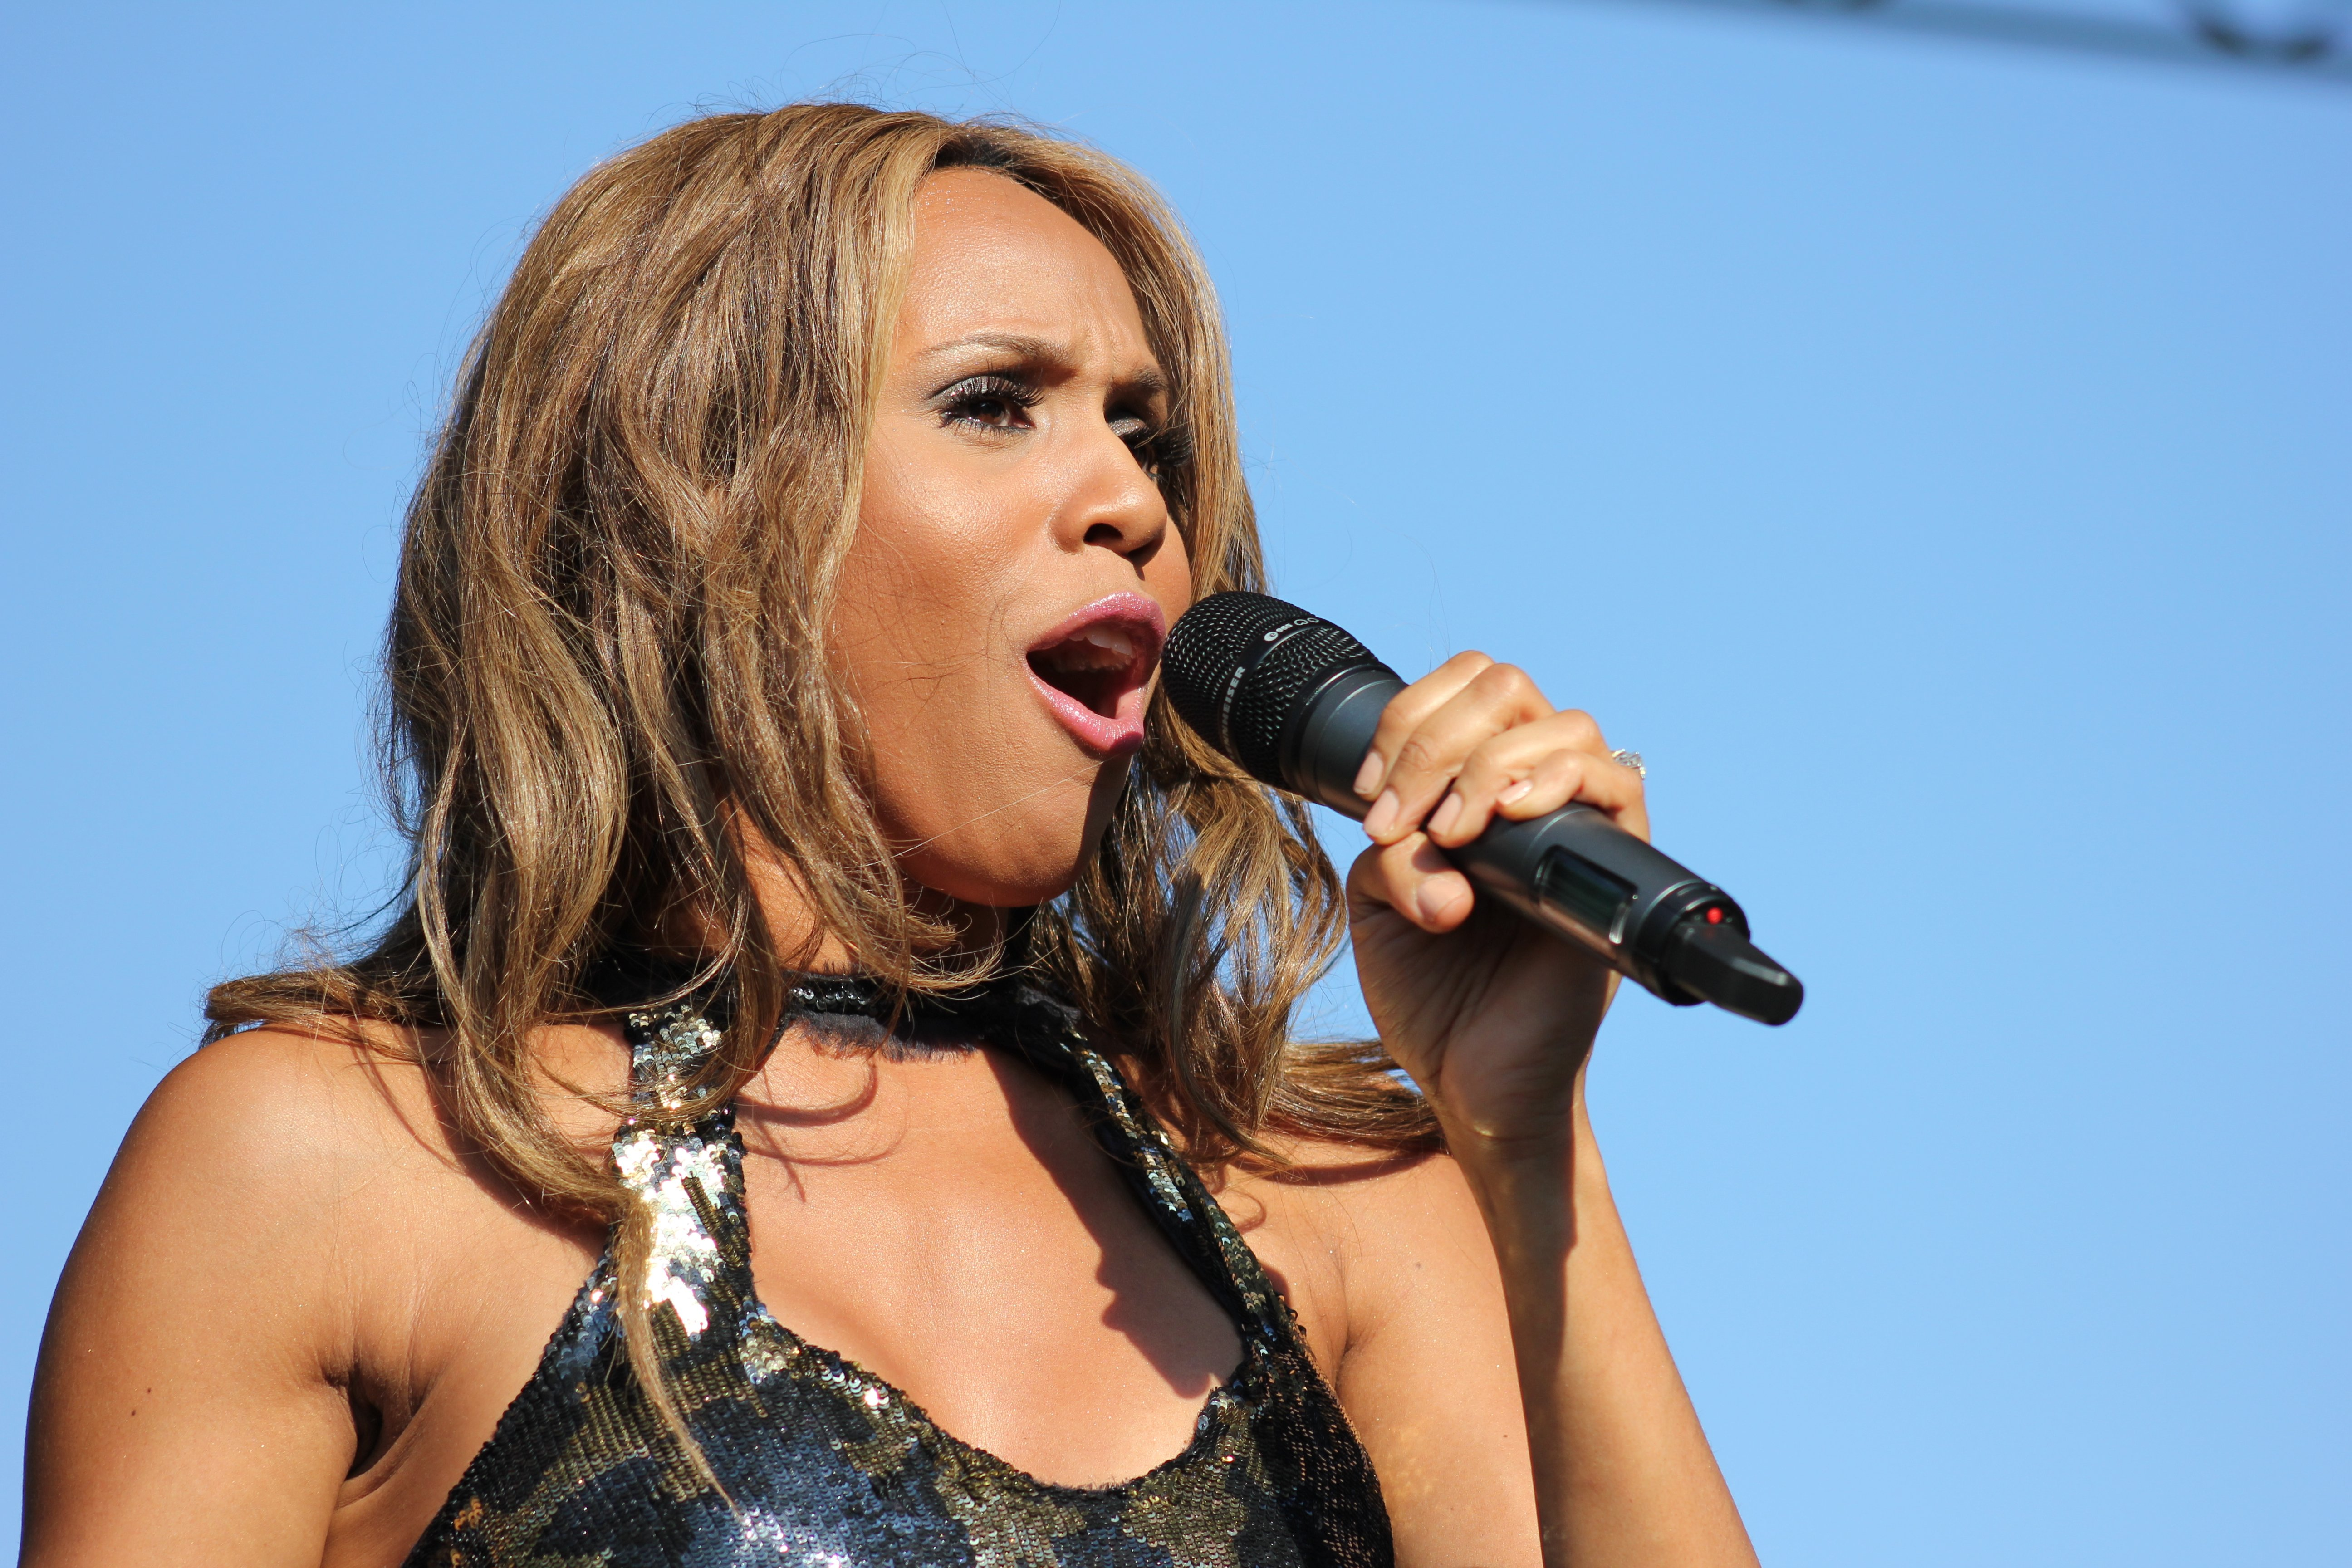 Deborah Cox performing during the 37th Capital Pride Festival at the Main Stage on Pennyslvania Avenue and 3rd Street, NW, Washington DC on June 10, 2012| Photo: Wkimedia Commons